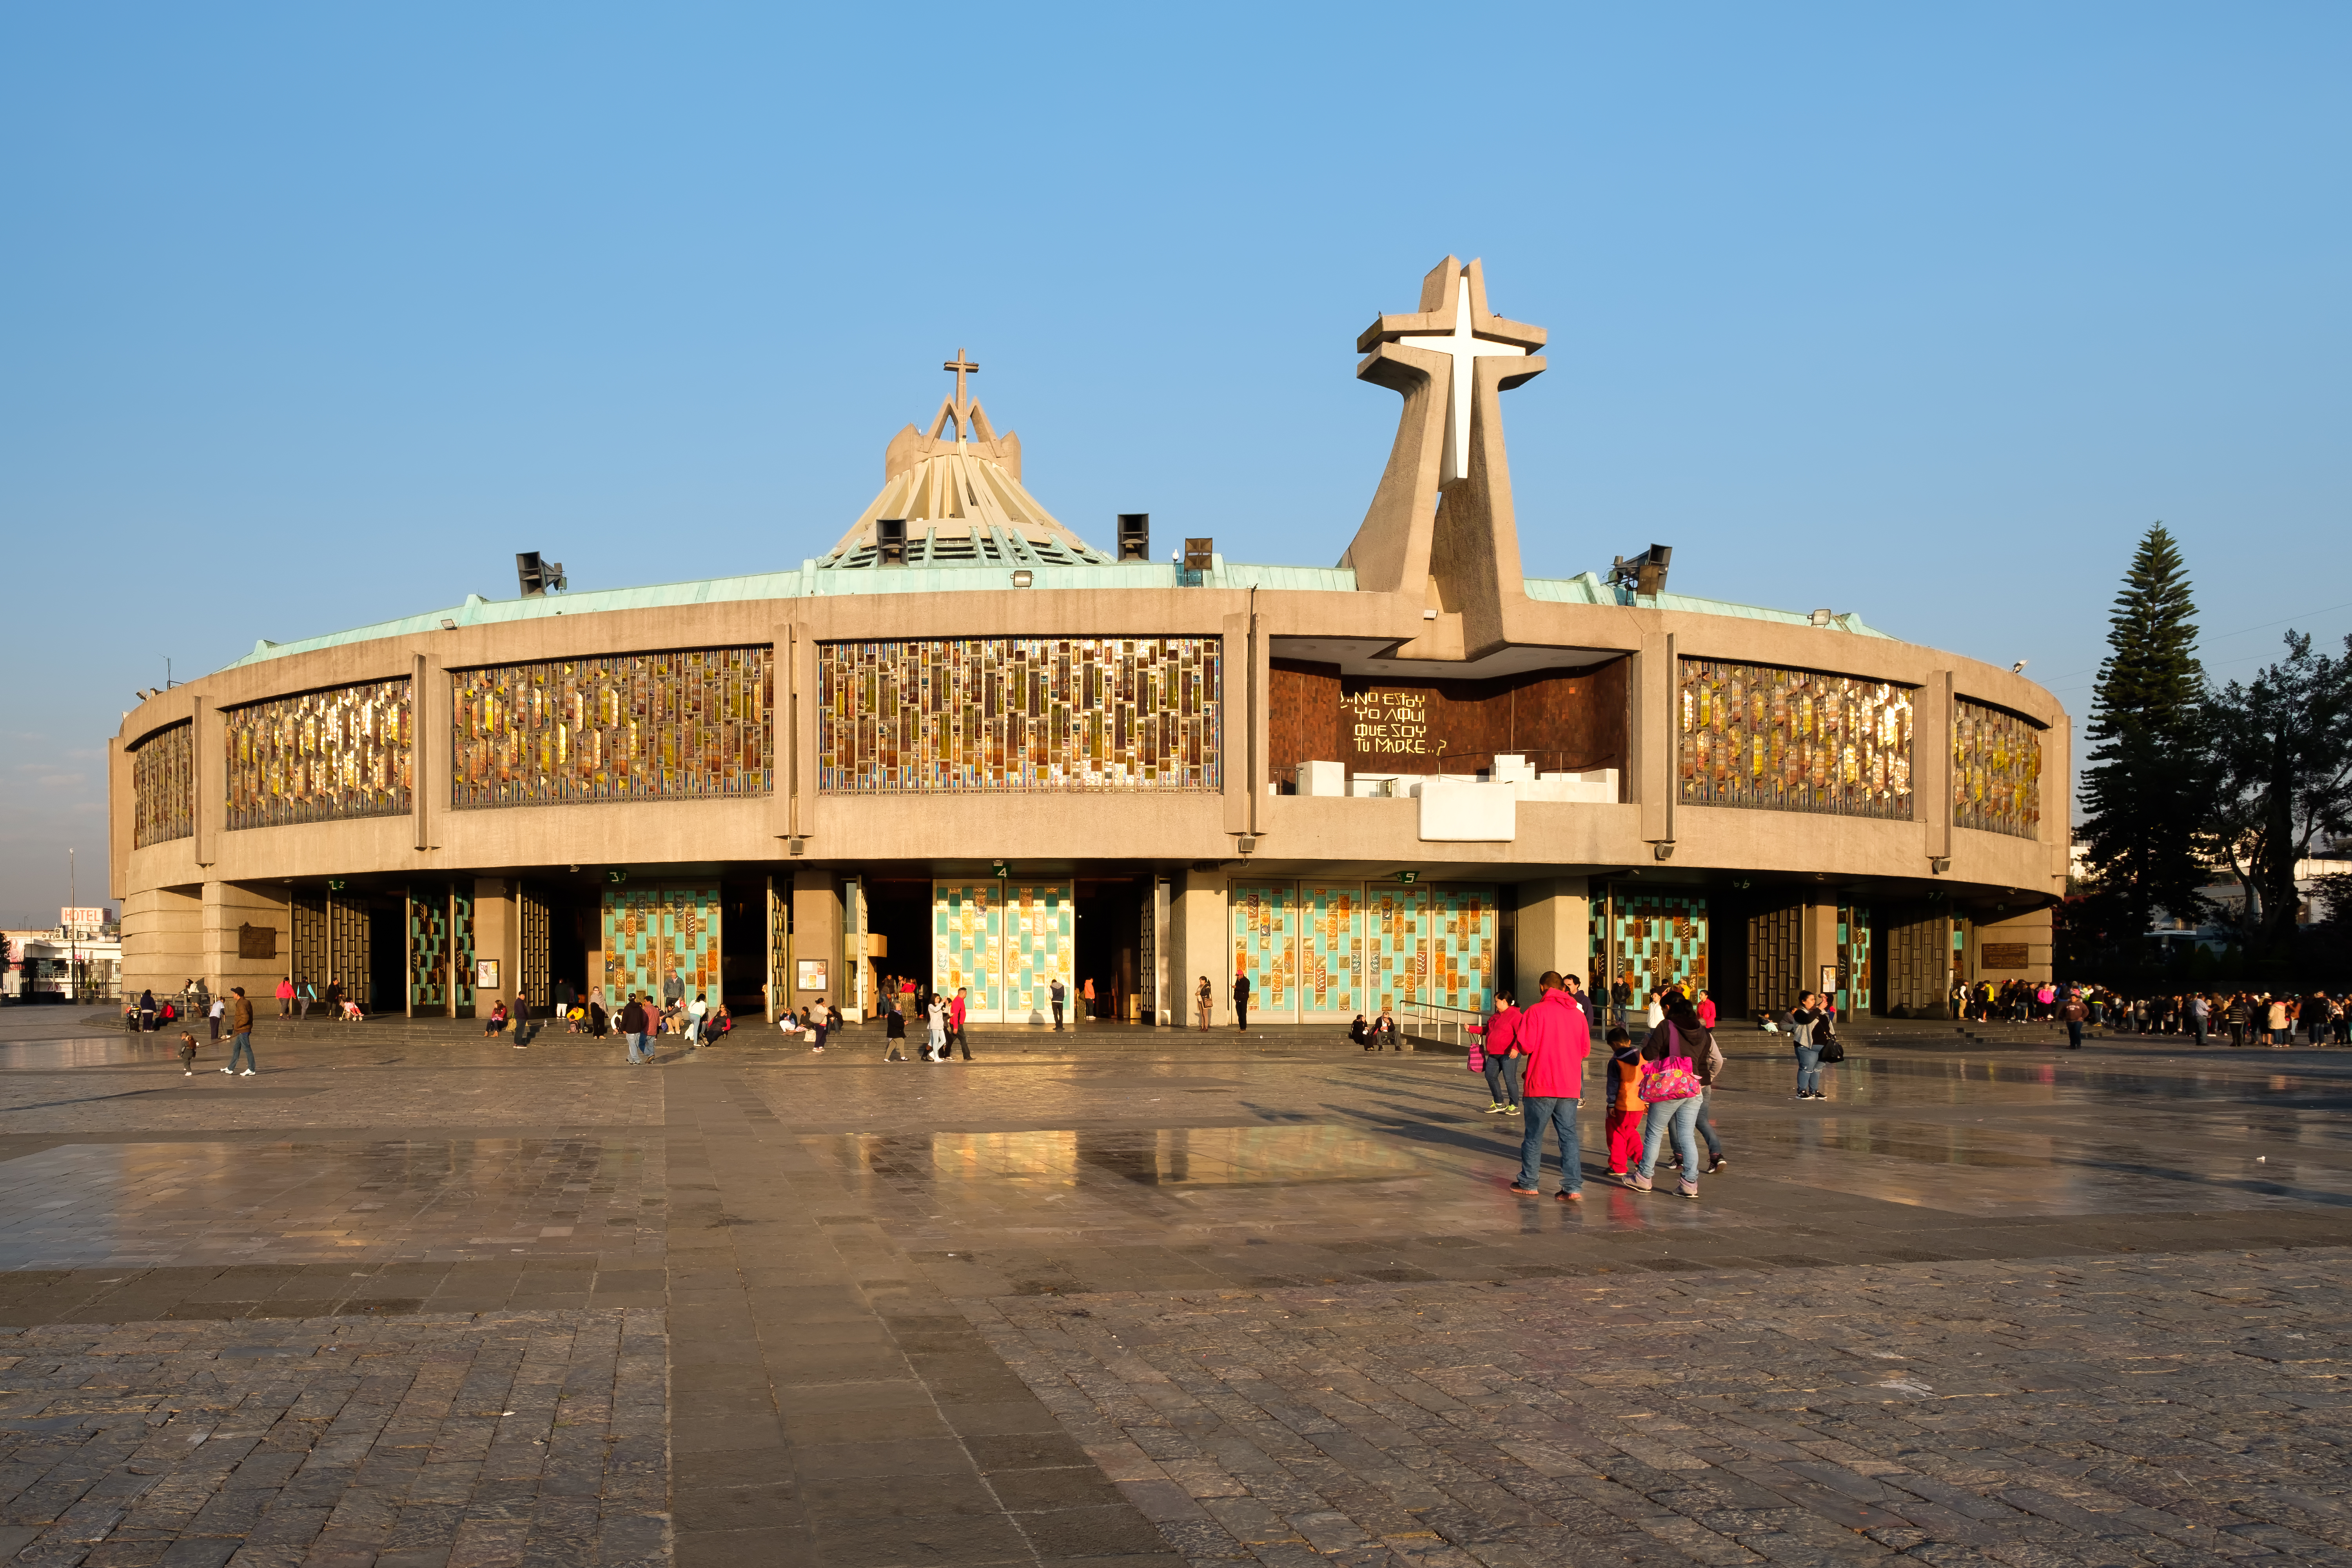 The Basilica of Our Lady of Guadalupe in Mexico City